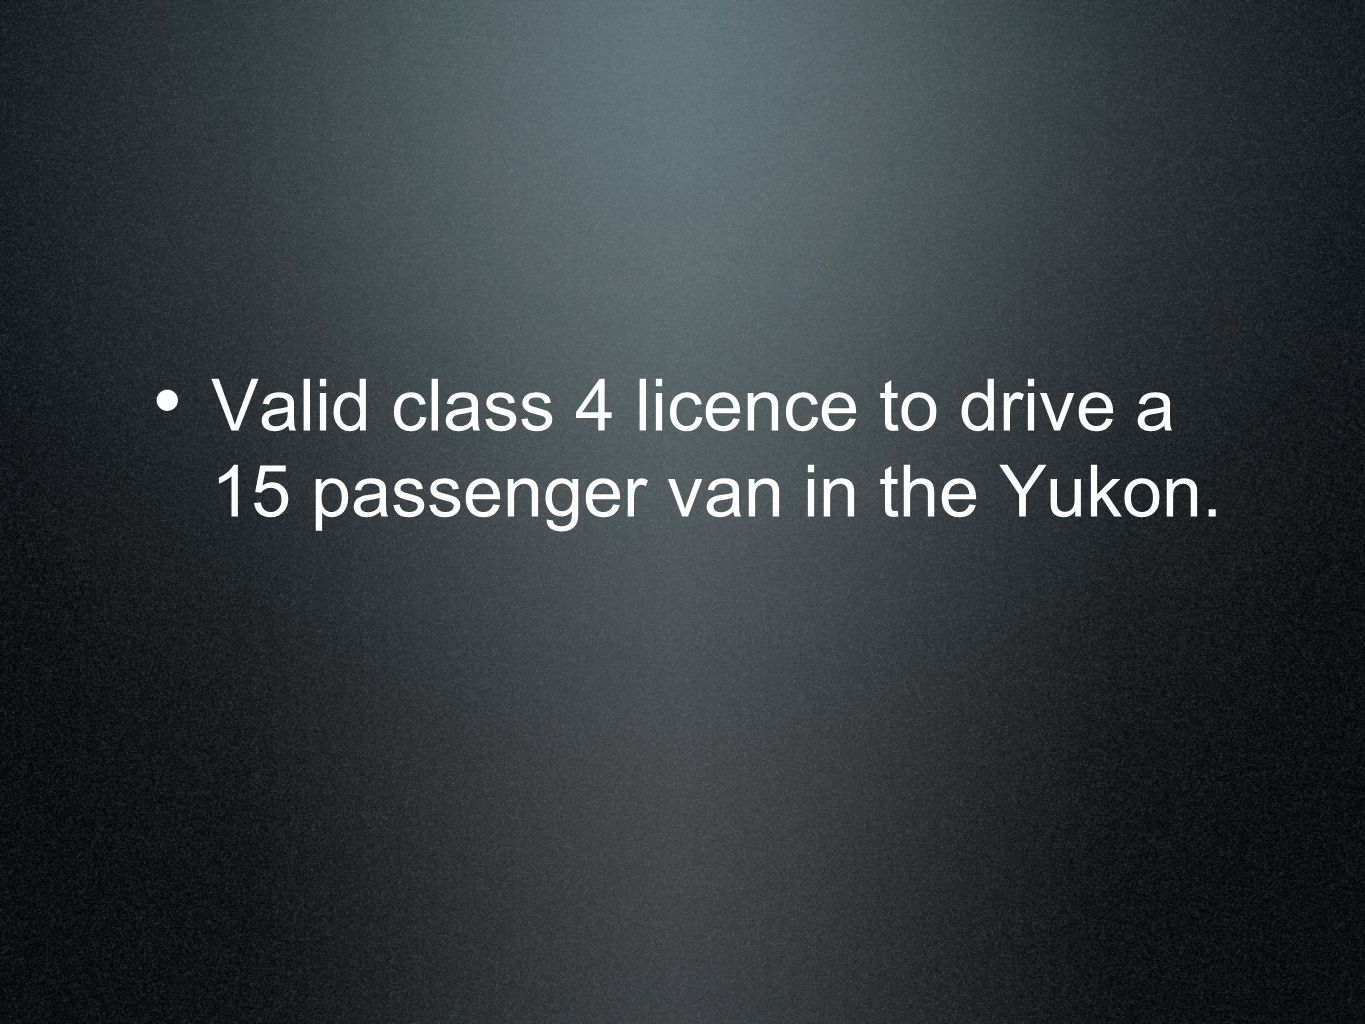 Valid class 4 licence to drive a 15 passenger van in the Yukon.